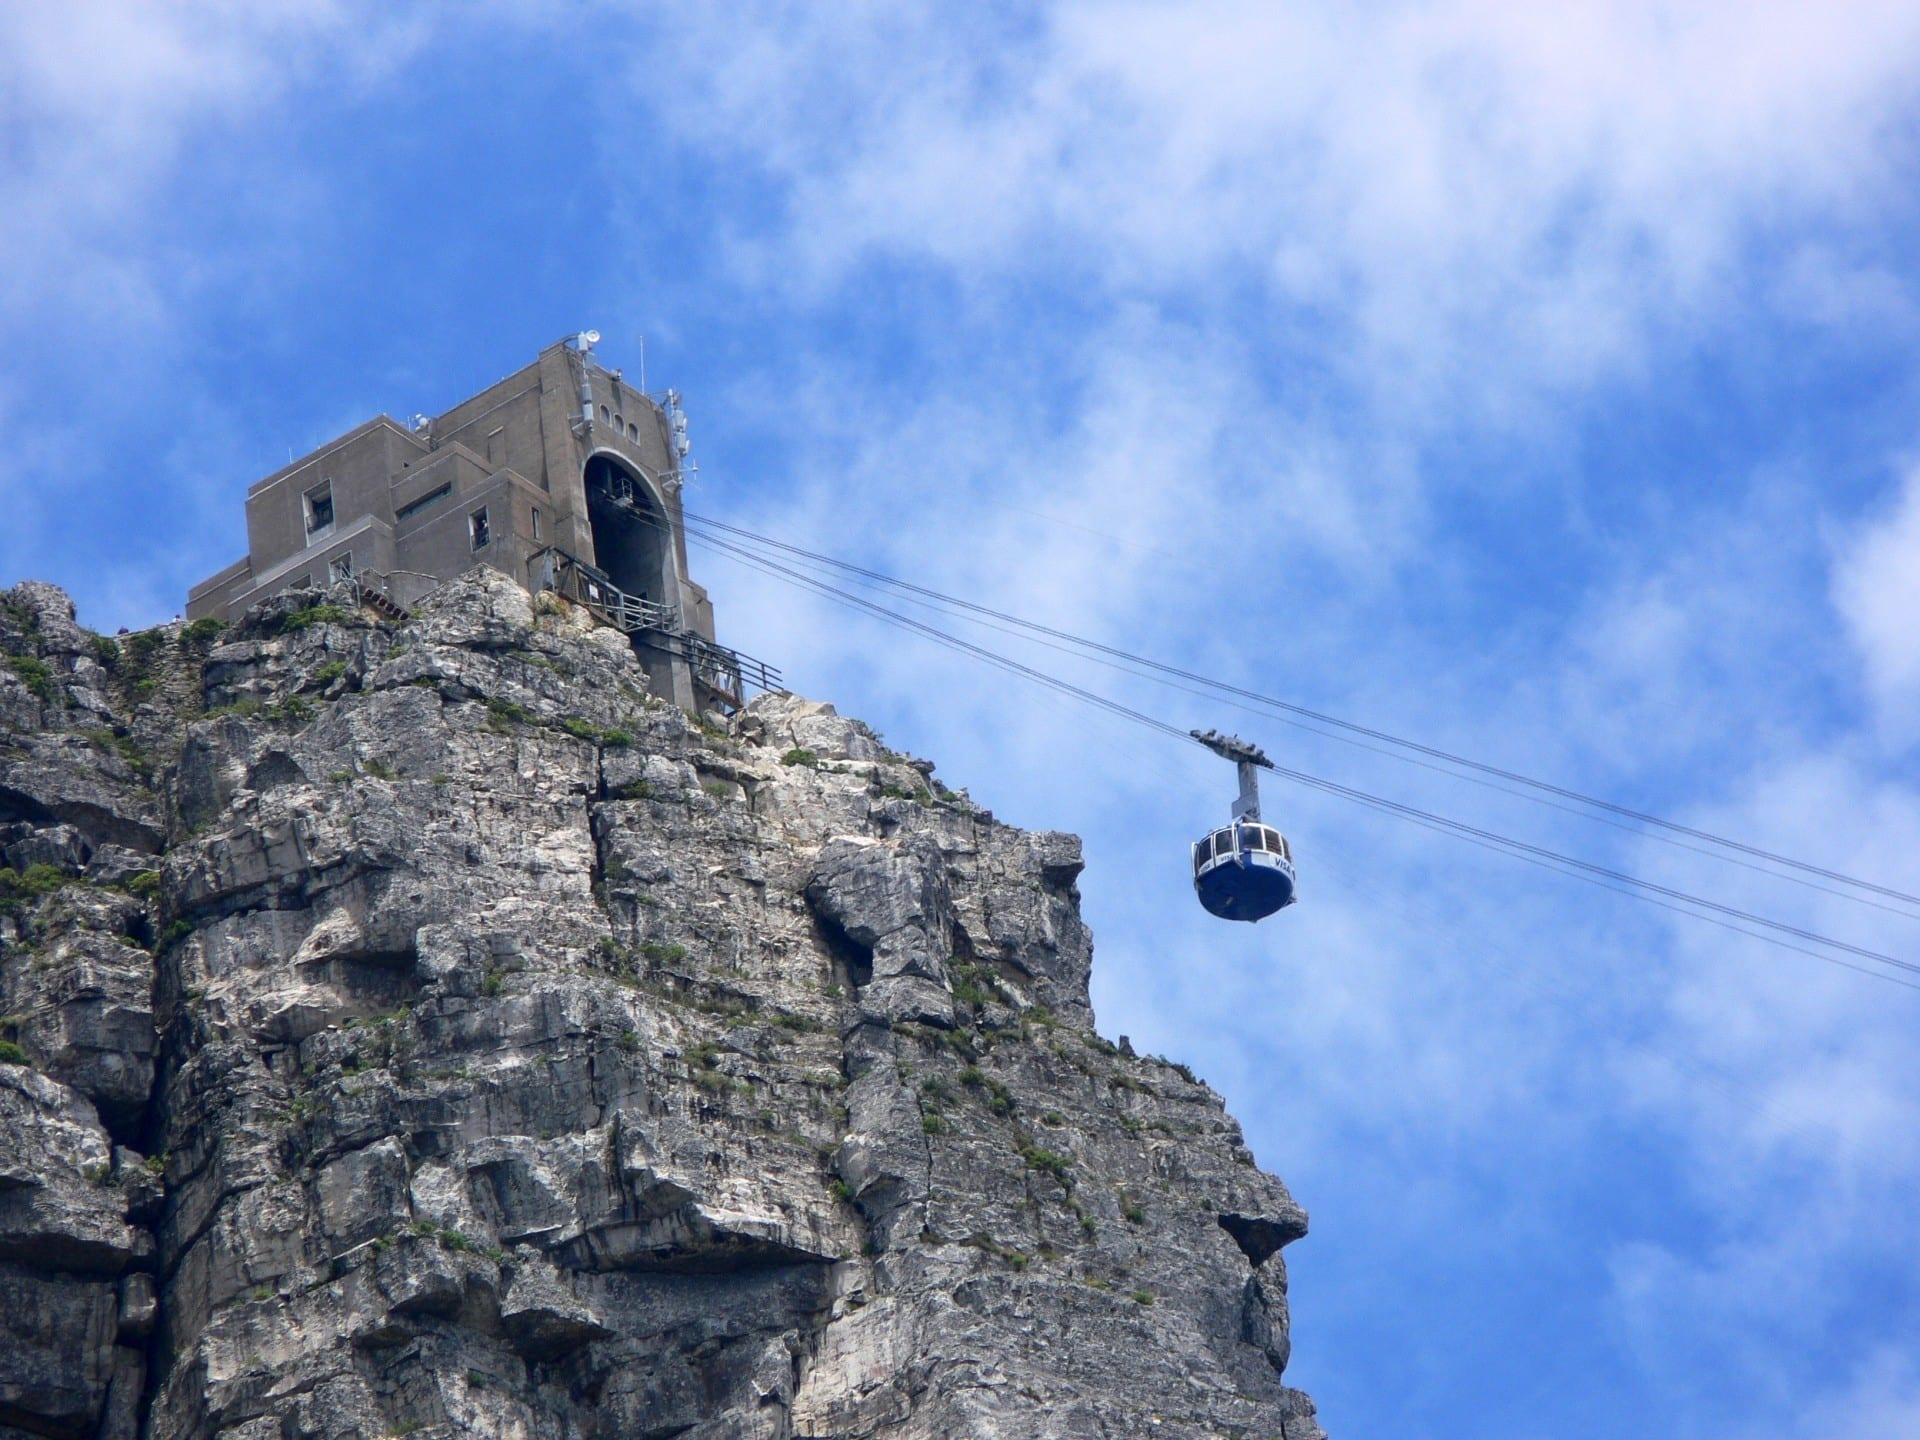 cable-car-THINGS TO DO IN CAPE TOWN IN NOVEMBER